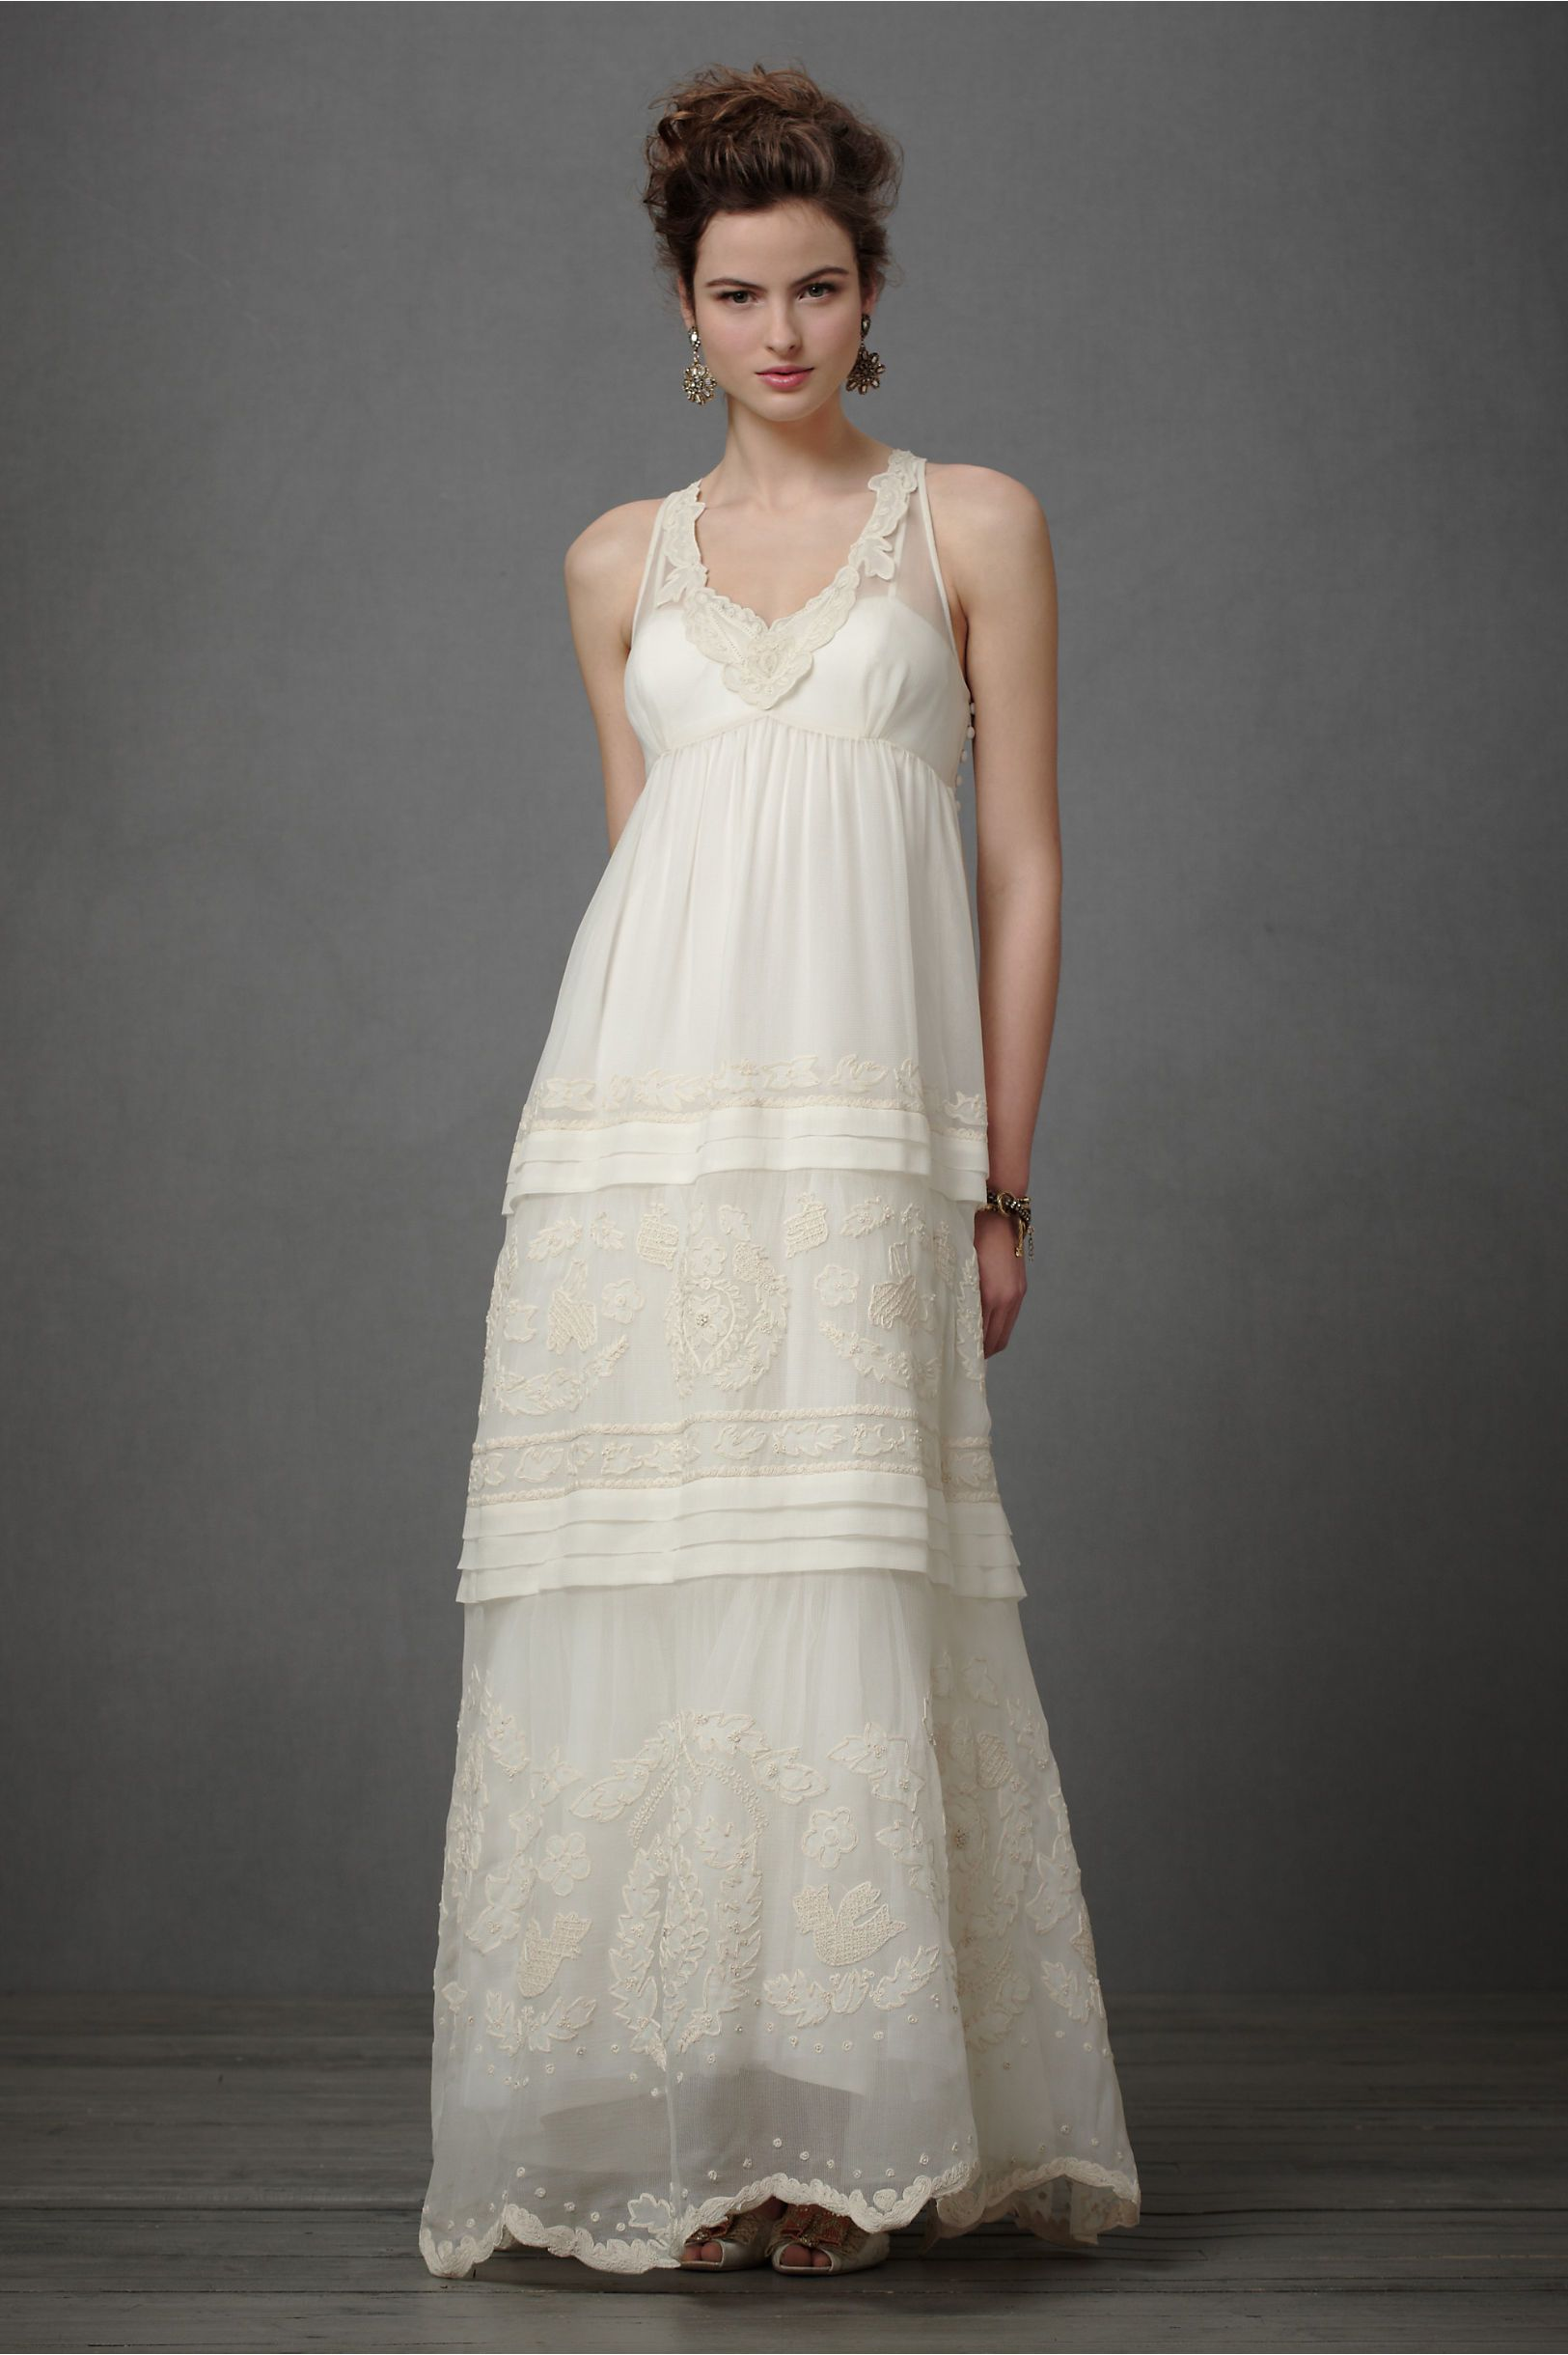 nicosia gardens gown from bhldn but more like an incredible nightgown than a wedding bohemian